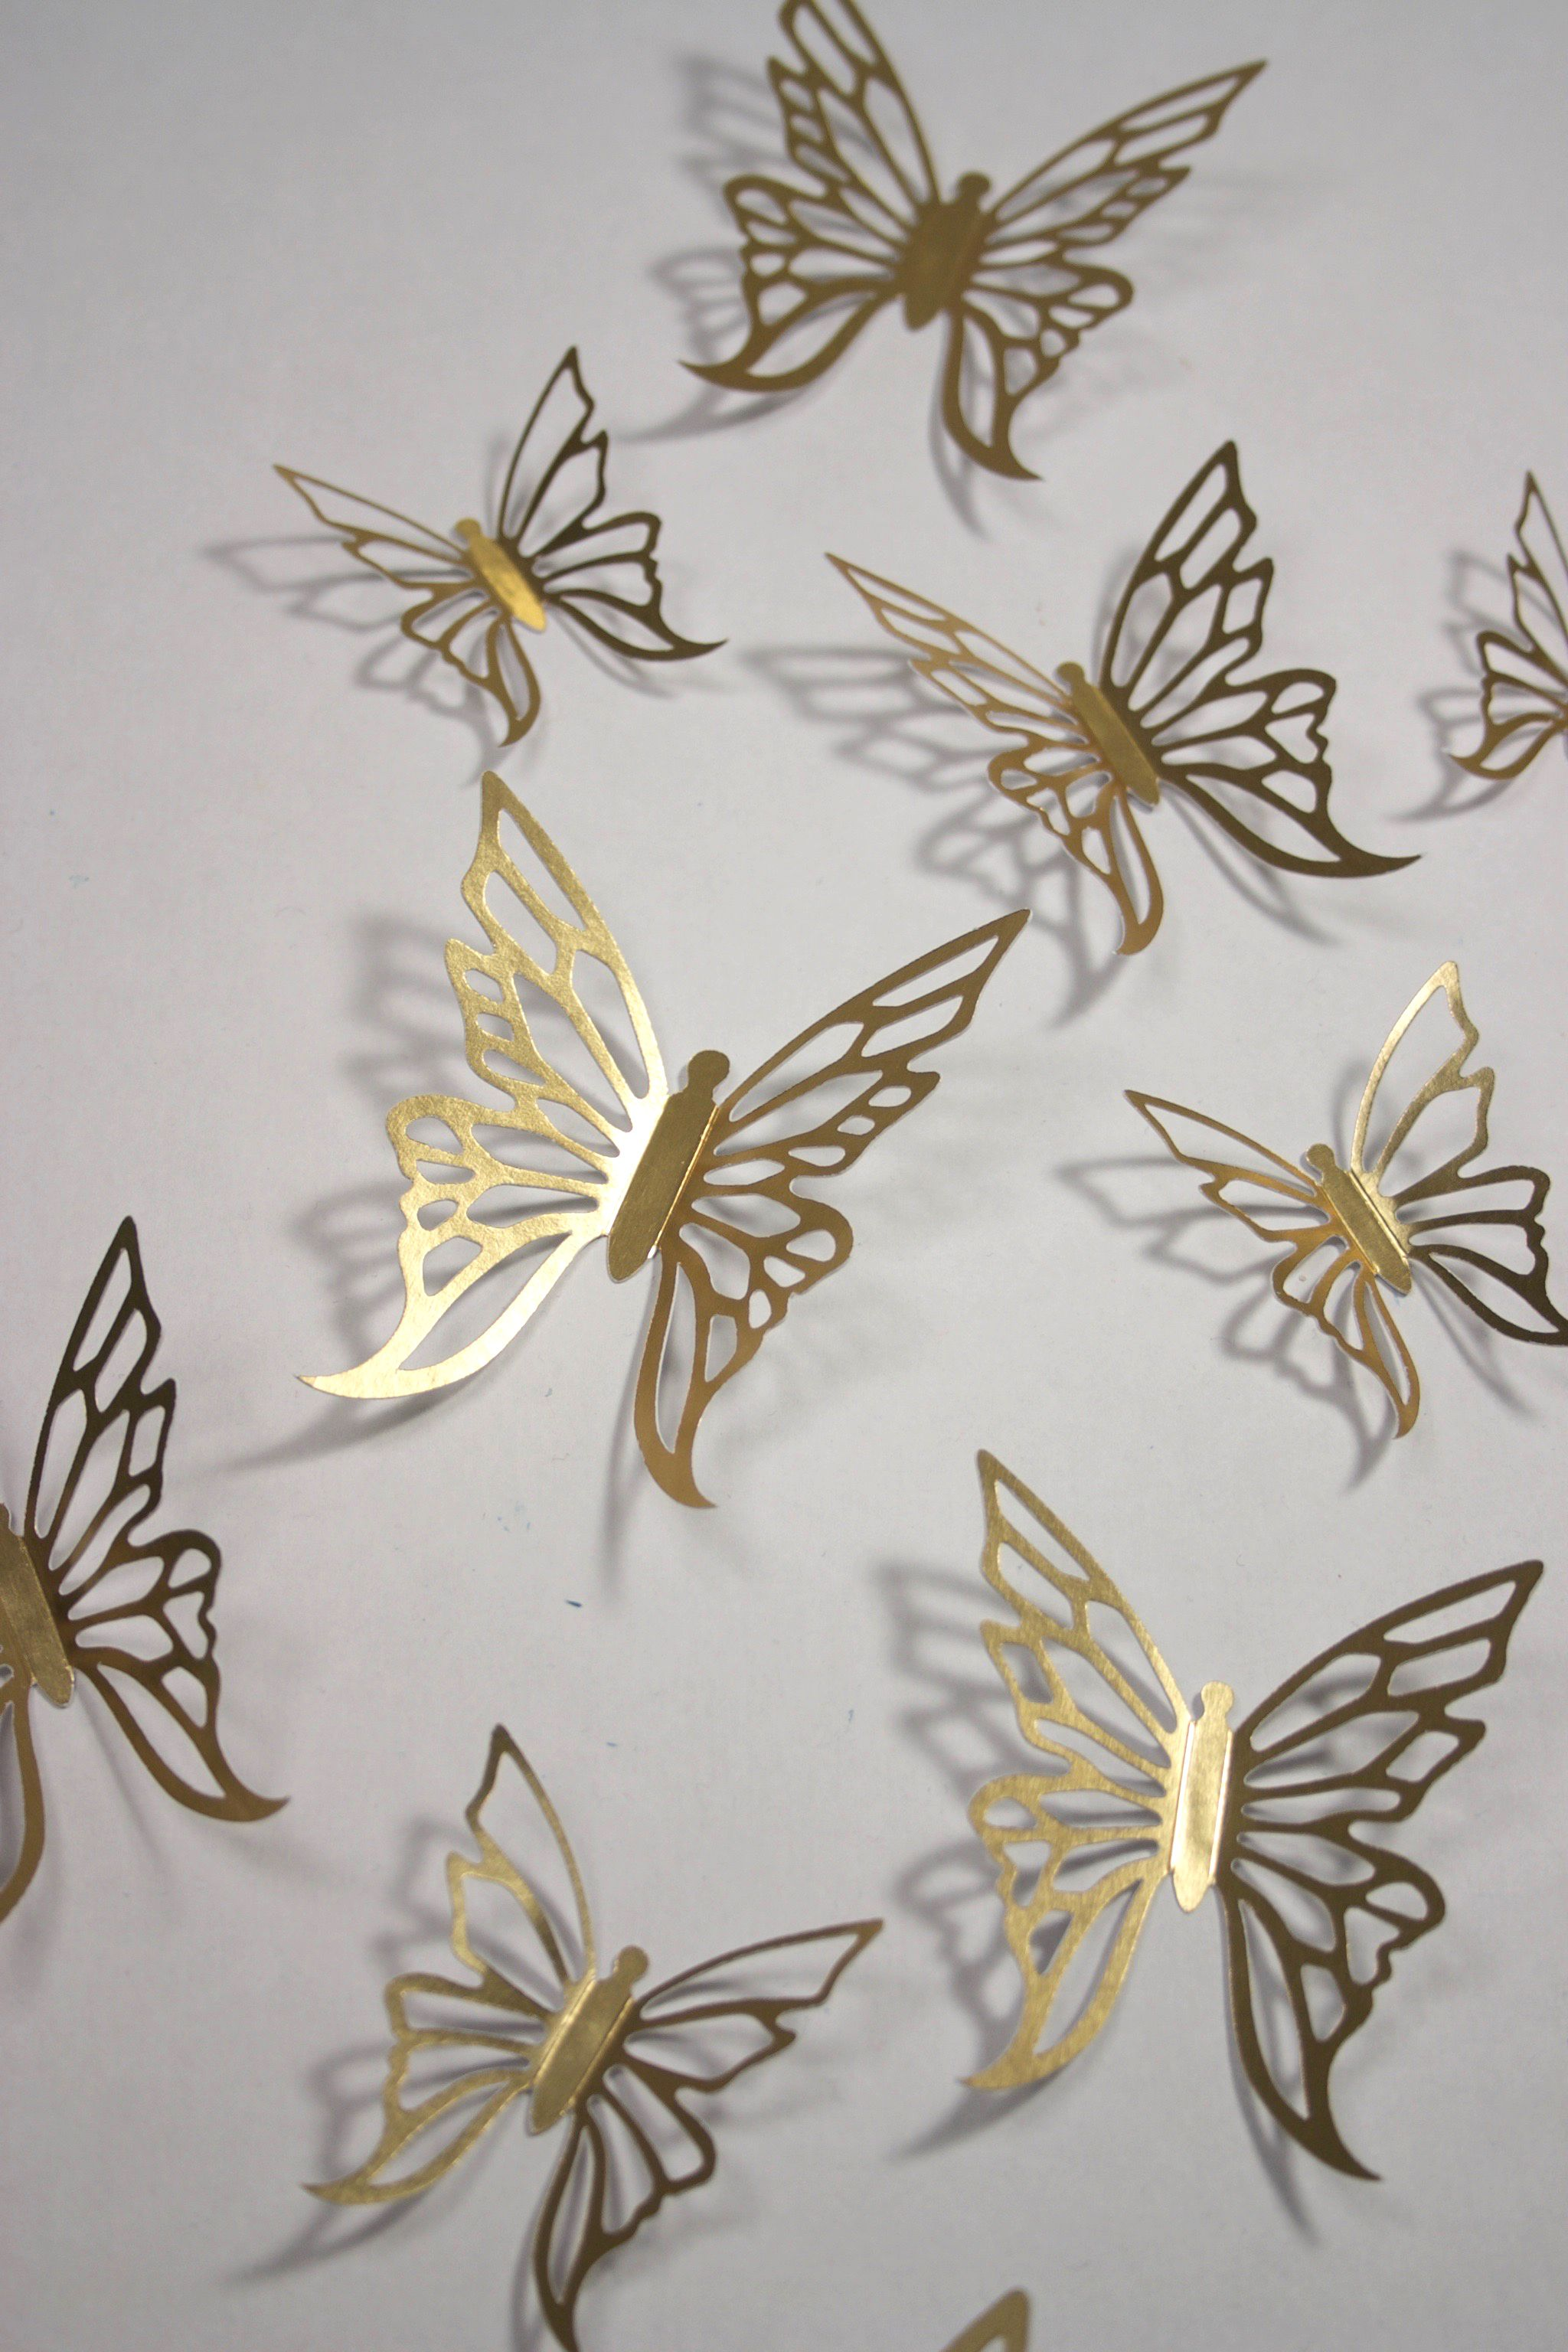 Gold Butterfly Wall Stickers Beautiful For Weddings Butterfly Wall Decor Butterfly Bathroom Bull Horns Wall Decor